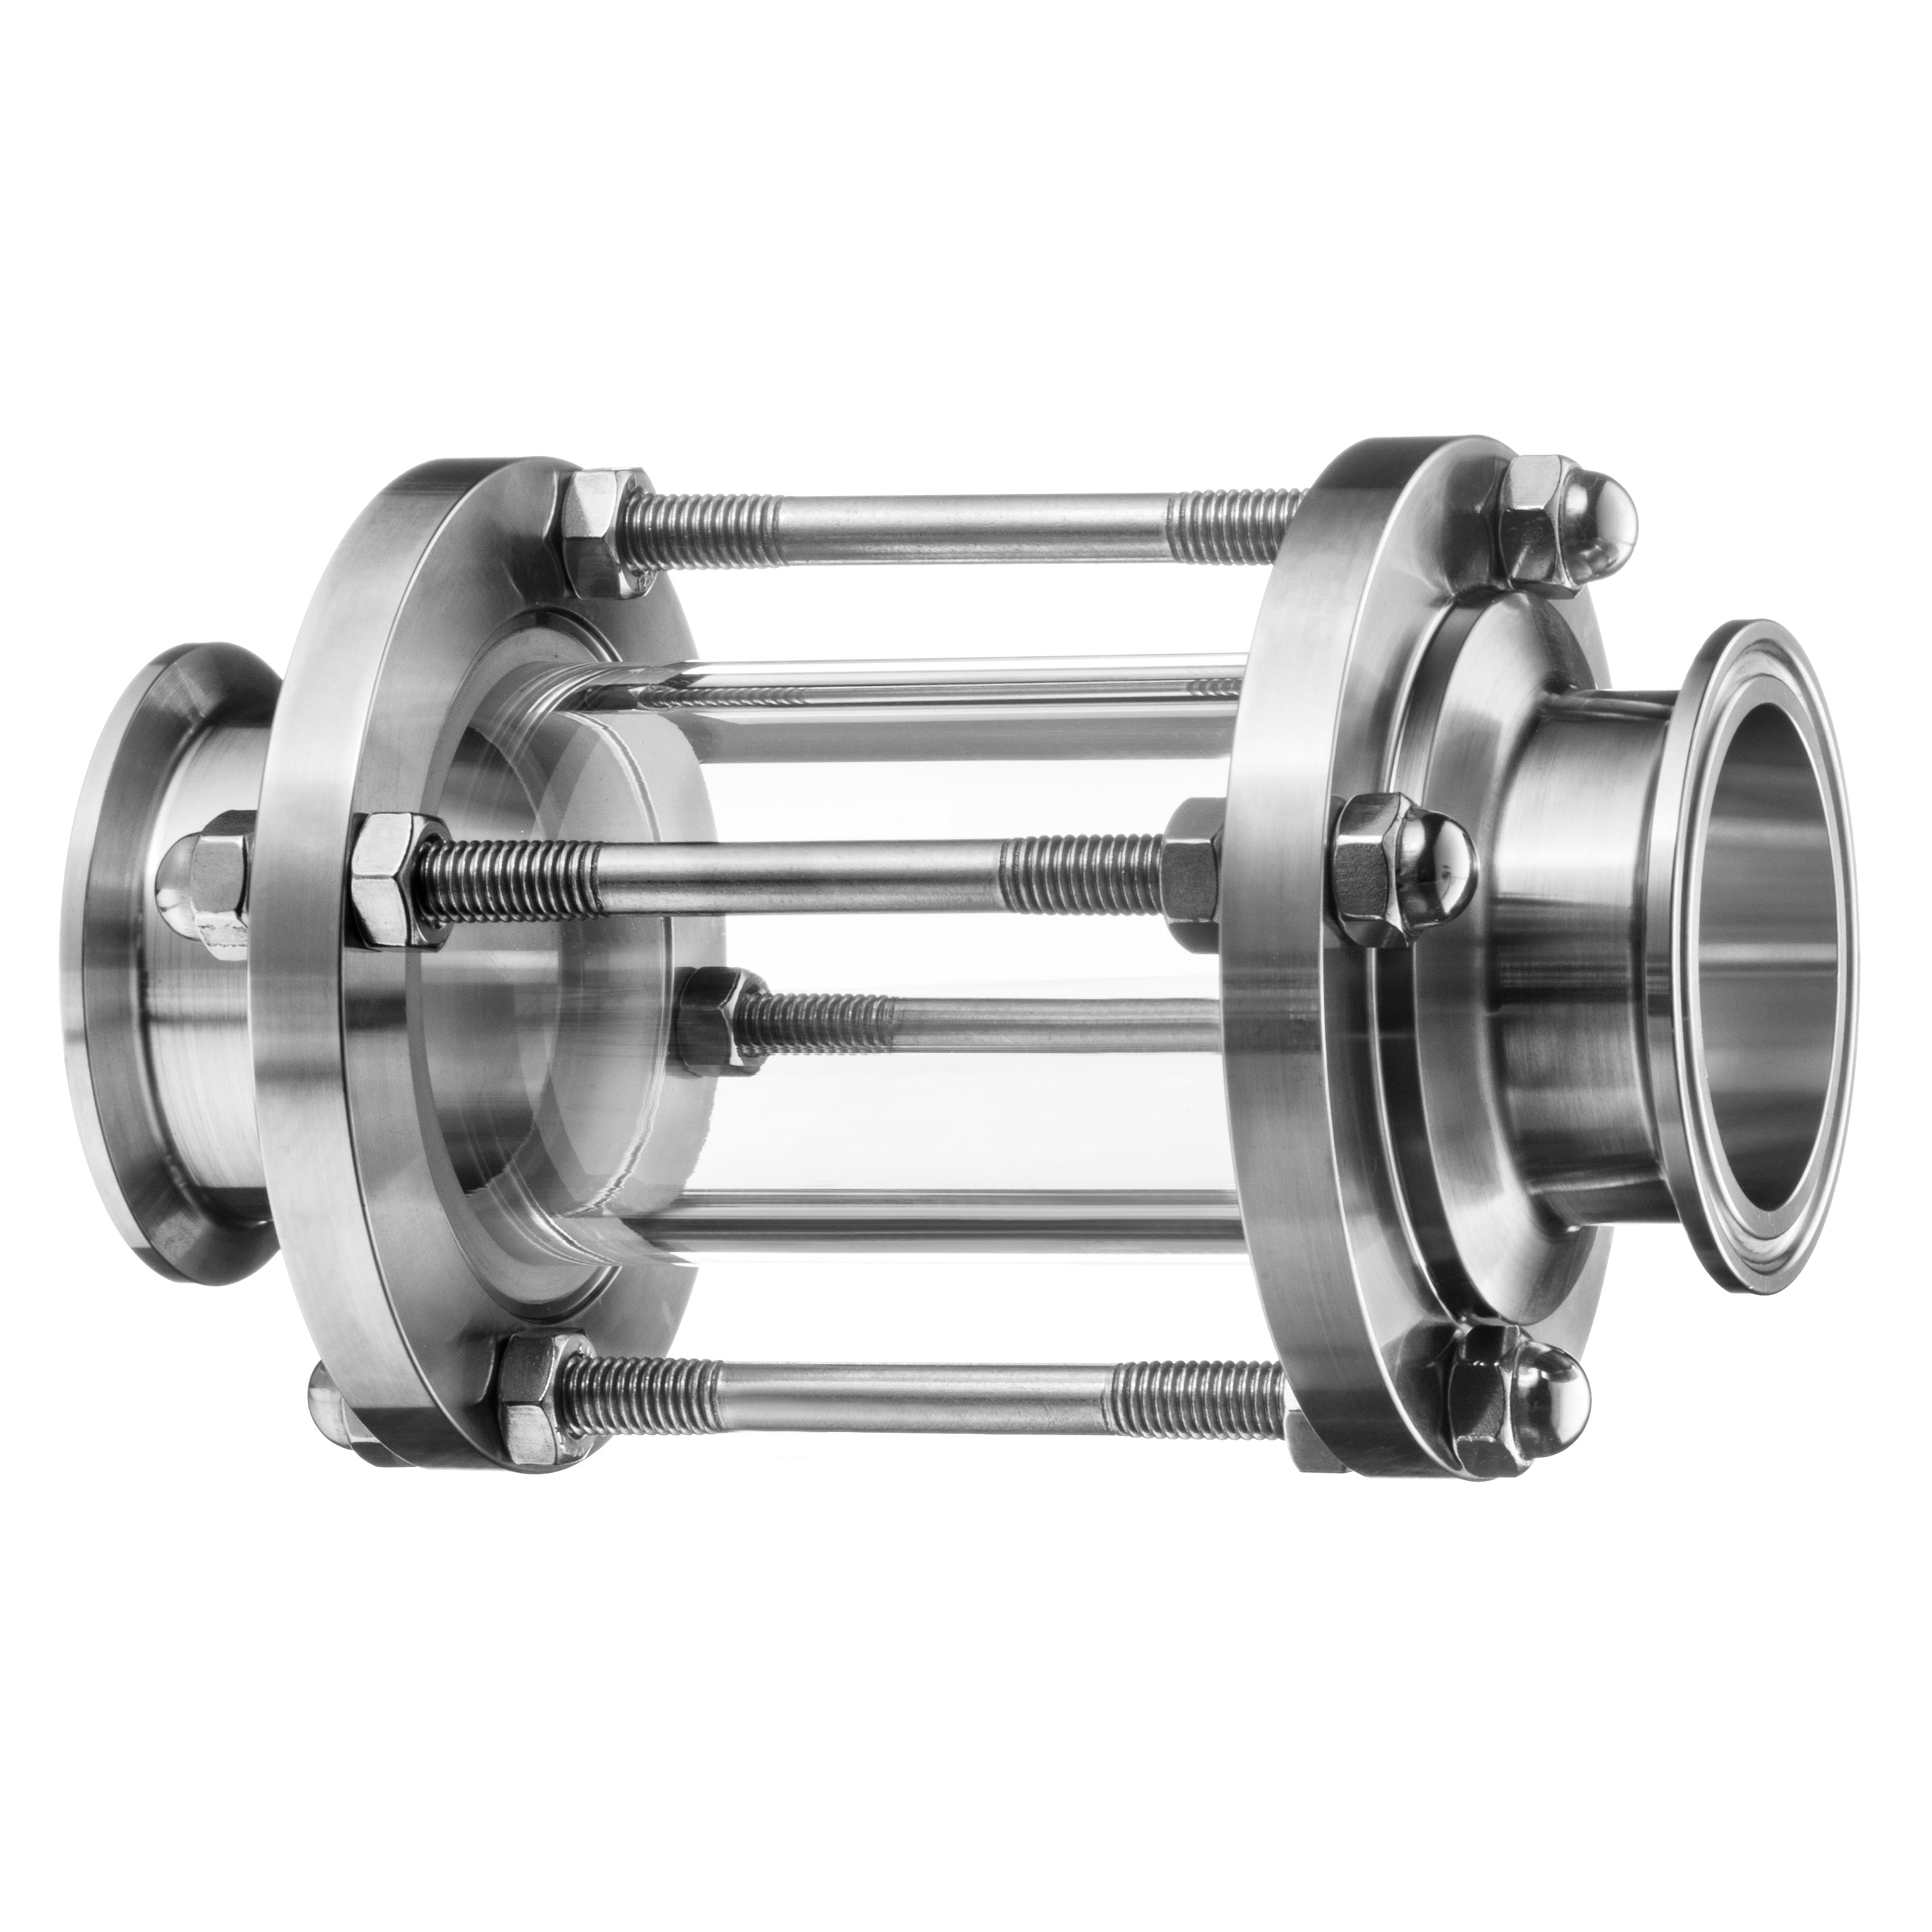 304 Stainless Steel Cam and Groove Hose Couplings